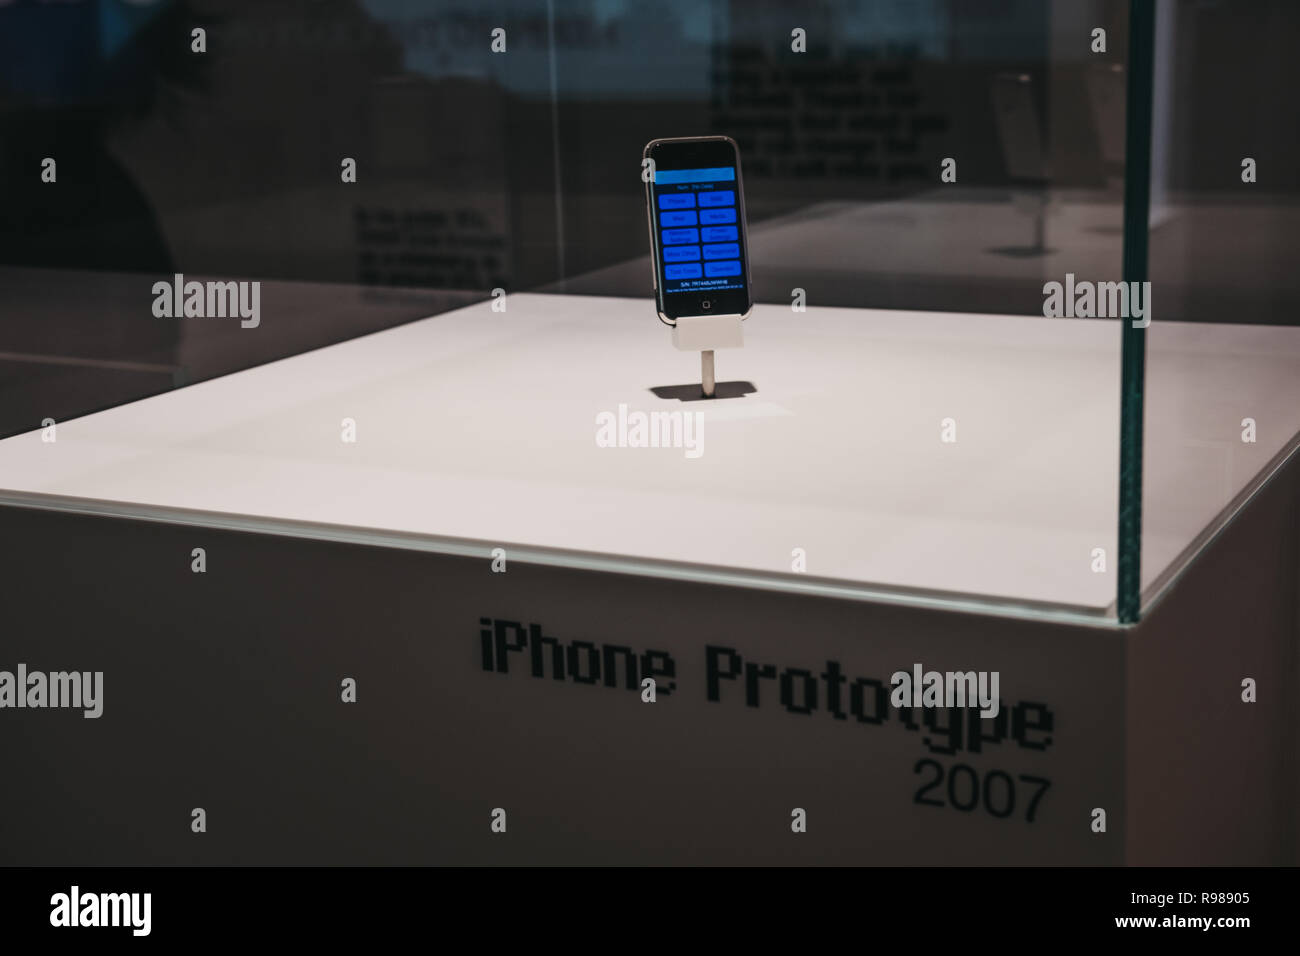 Prague, Czech Republic - August 28, 2018: iPhone prototype on exhibit inside Apple Museum in Prague, the largest private collection of Apple products  - Stock Image